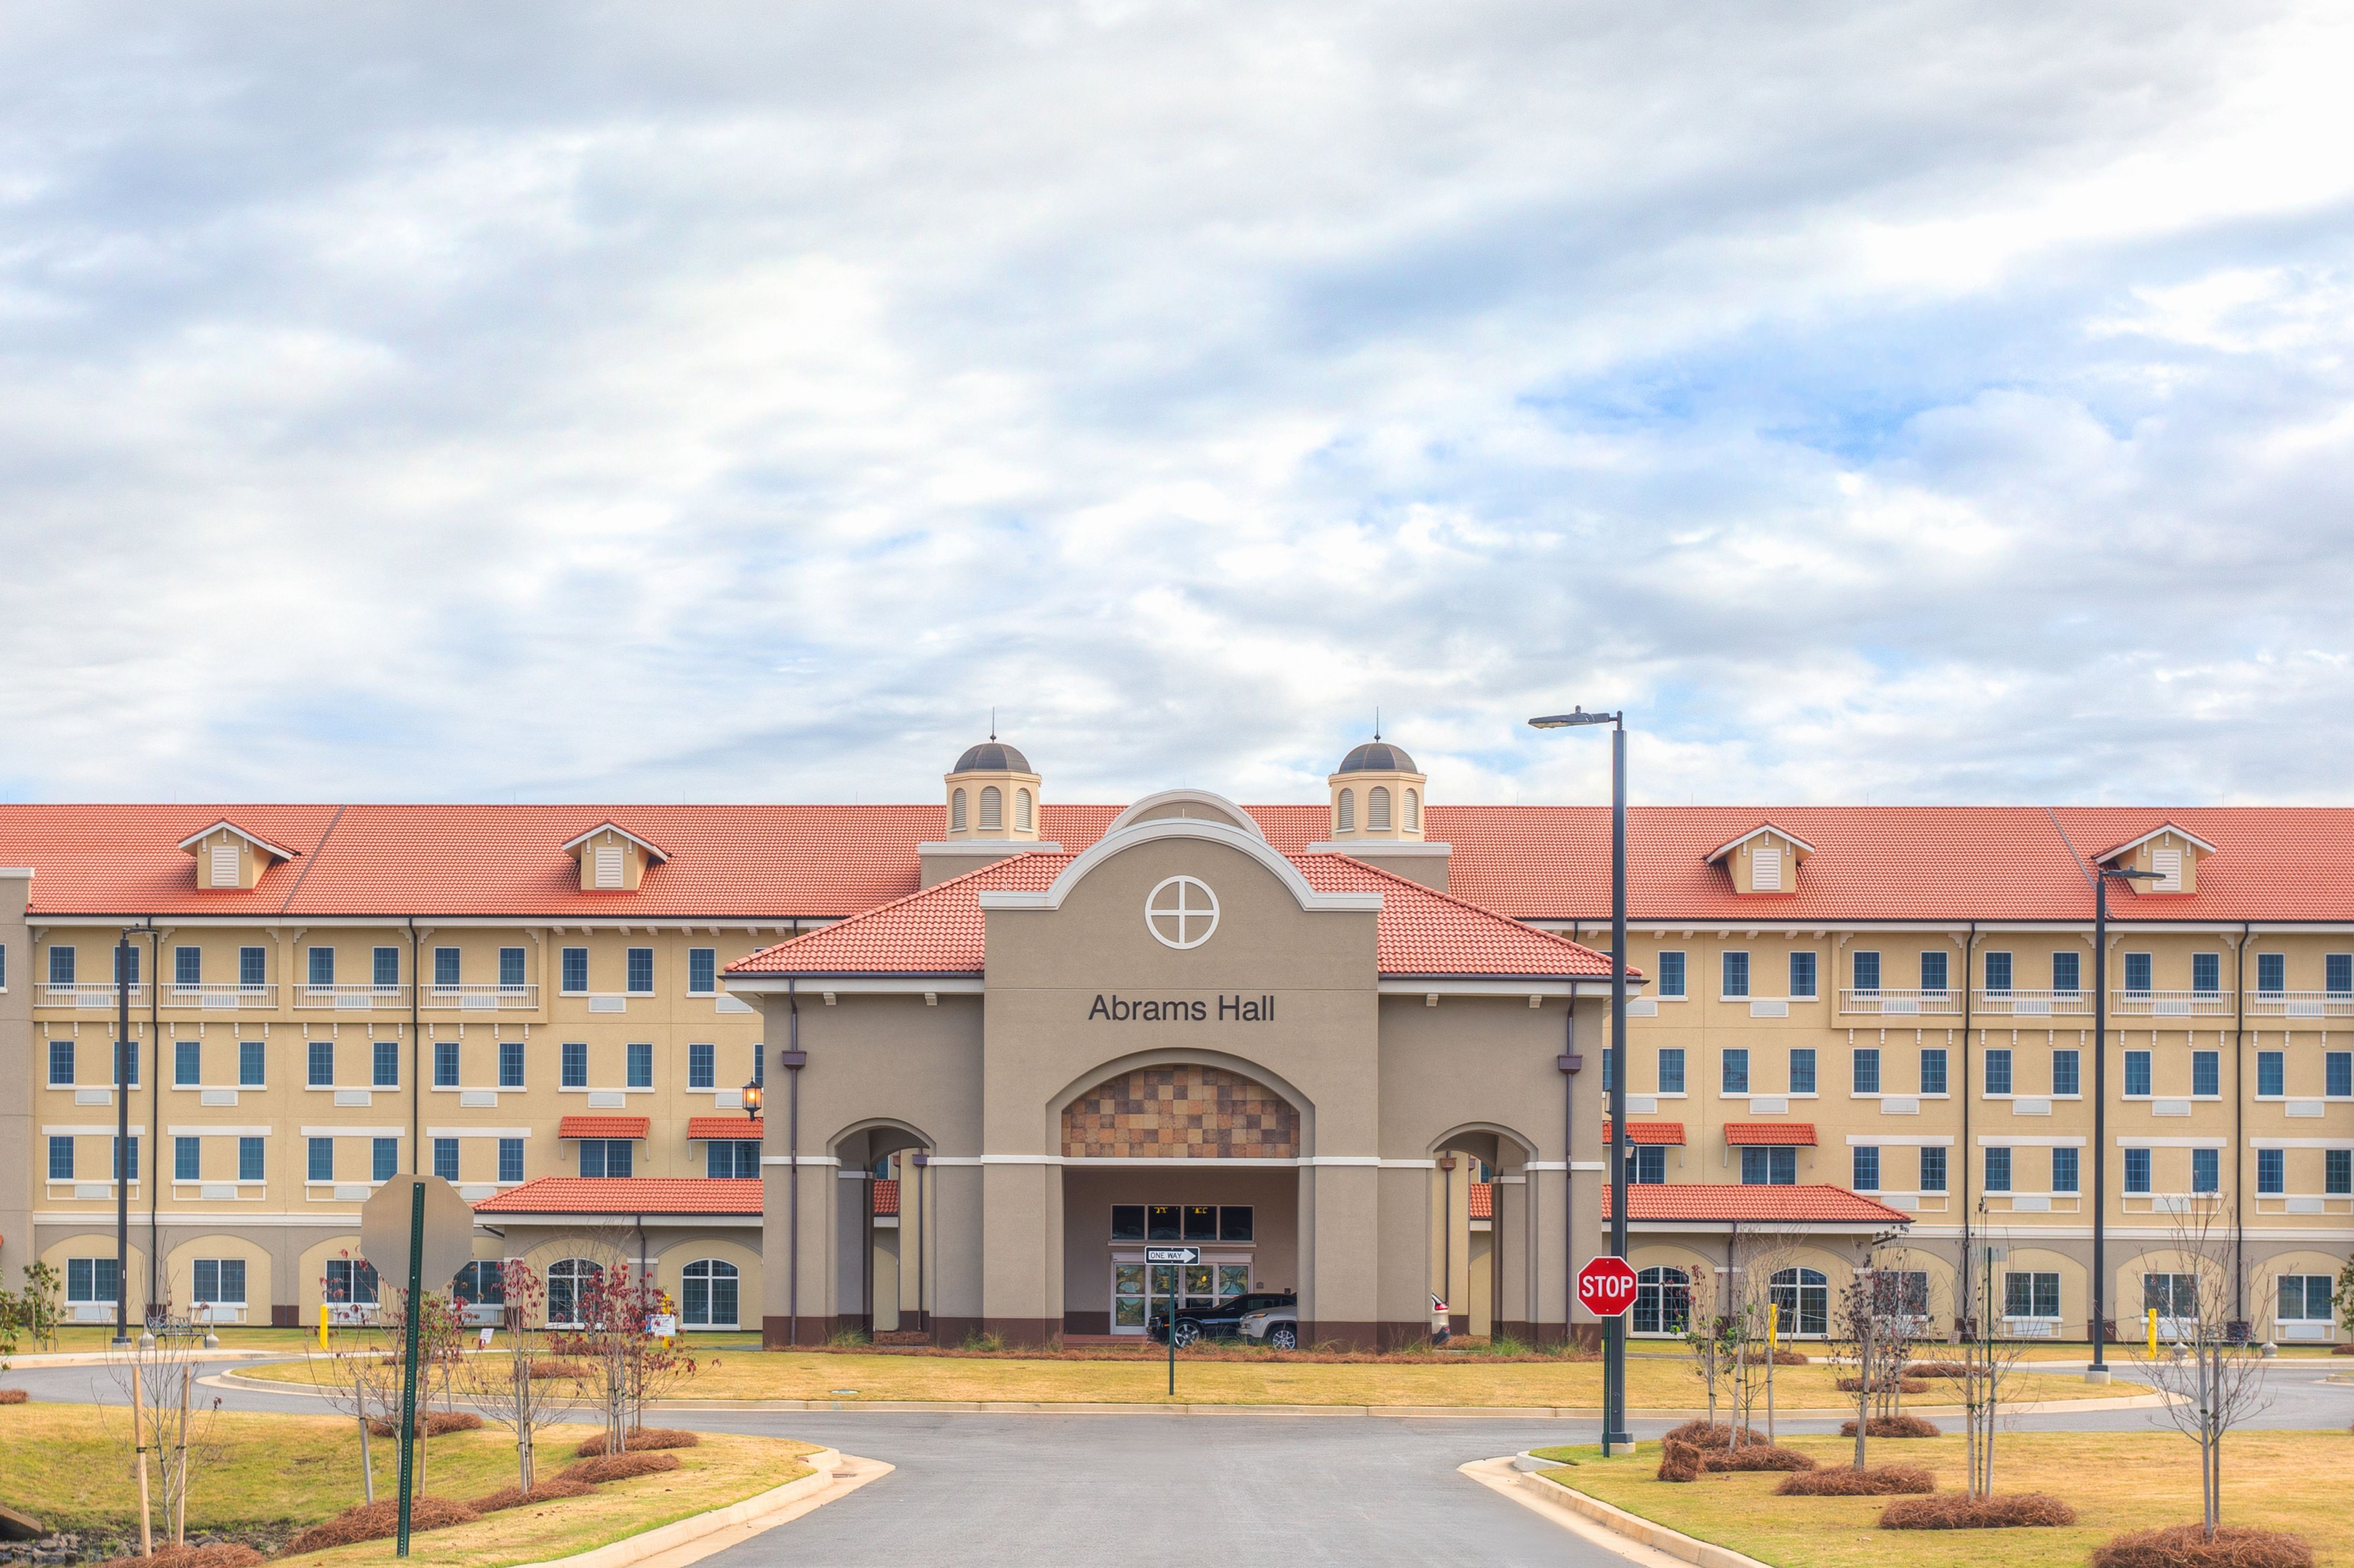 fort benning chatrooms Columbus is a city of approximately 200,000 residents, situated along the alabama border in muscogee county, georgia fort benning, a major military base with roughly 120,000 residents, lies on the city's outskirts.